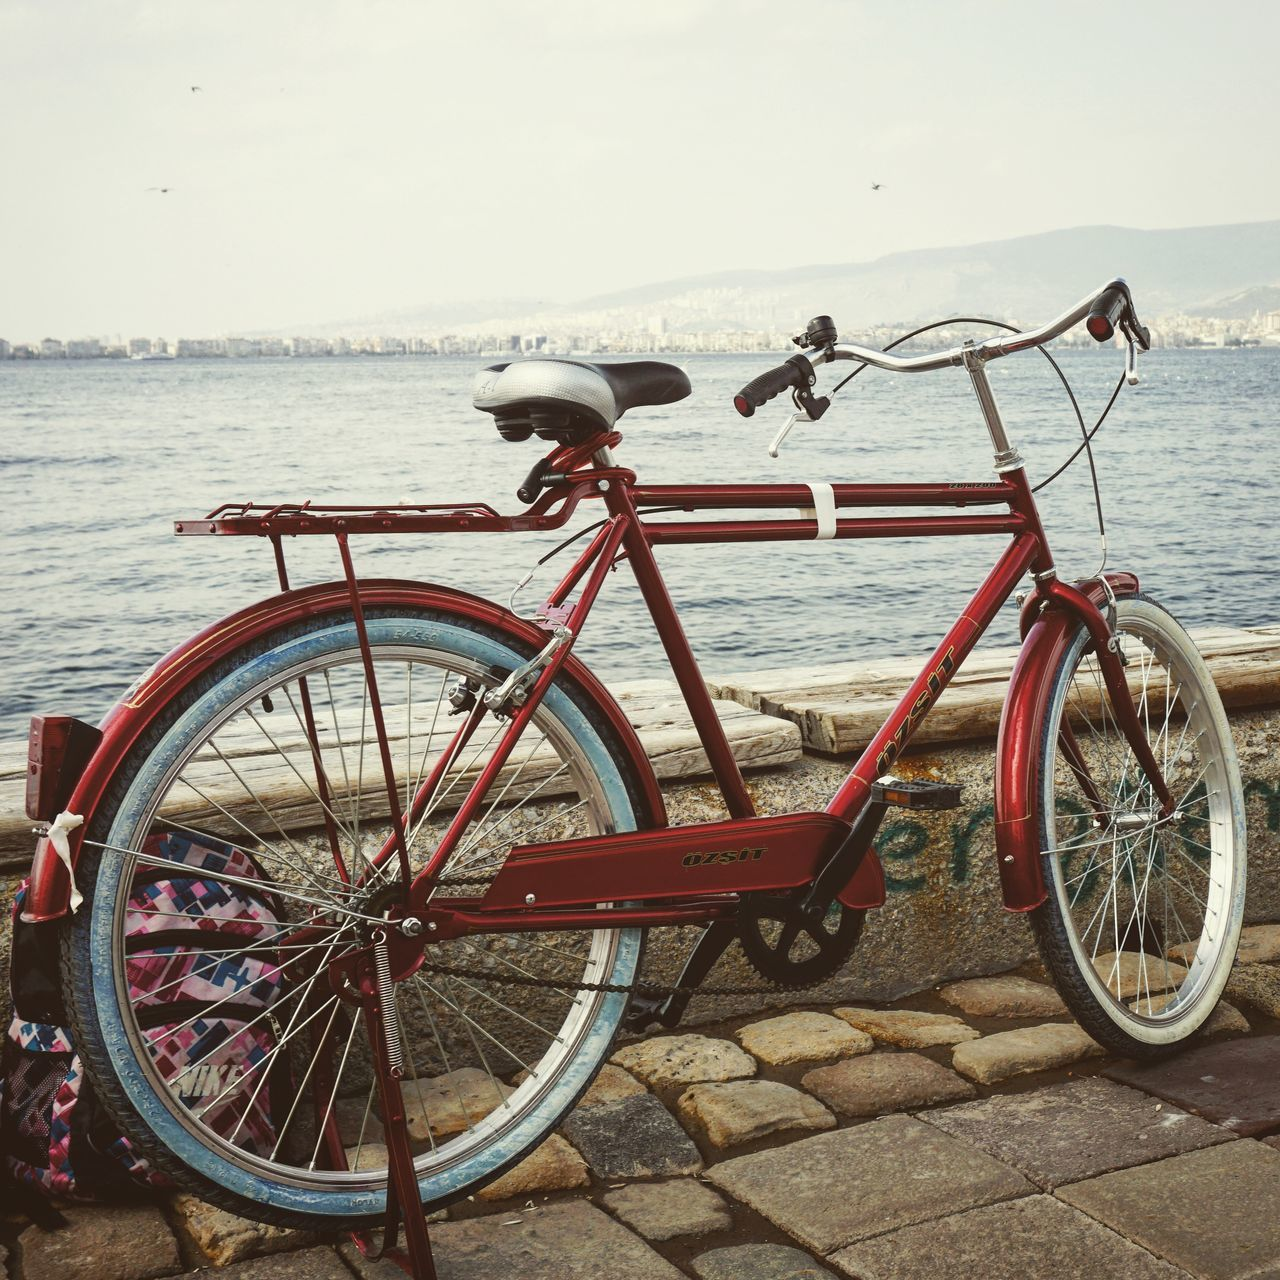 bicycle, transportation, mode of transport, water, sea, outdoors, land vehicle, day, stationary, nature, no people, nautical vessel, sky